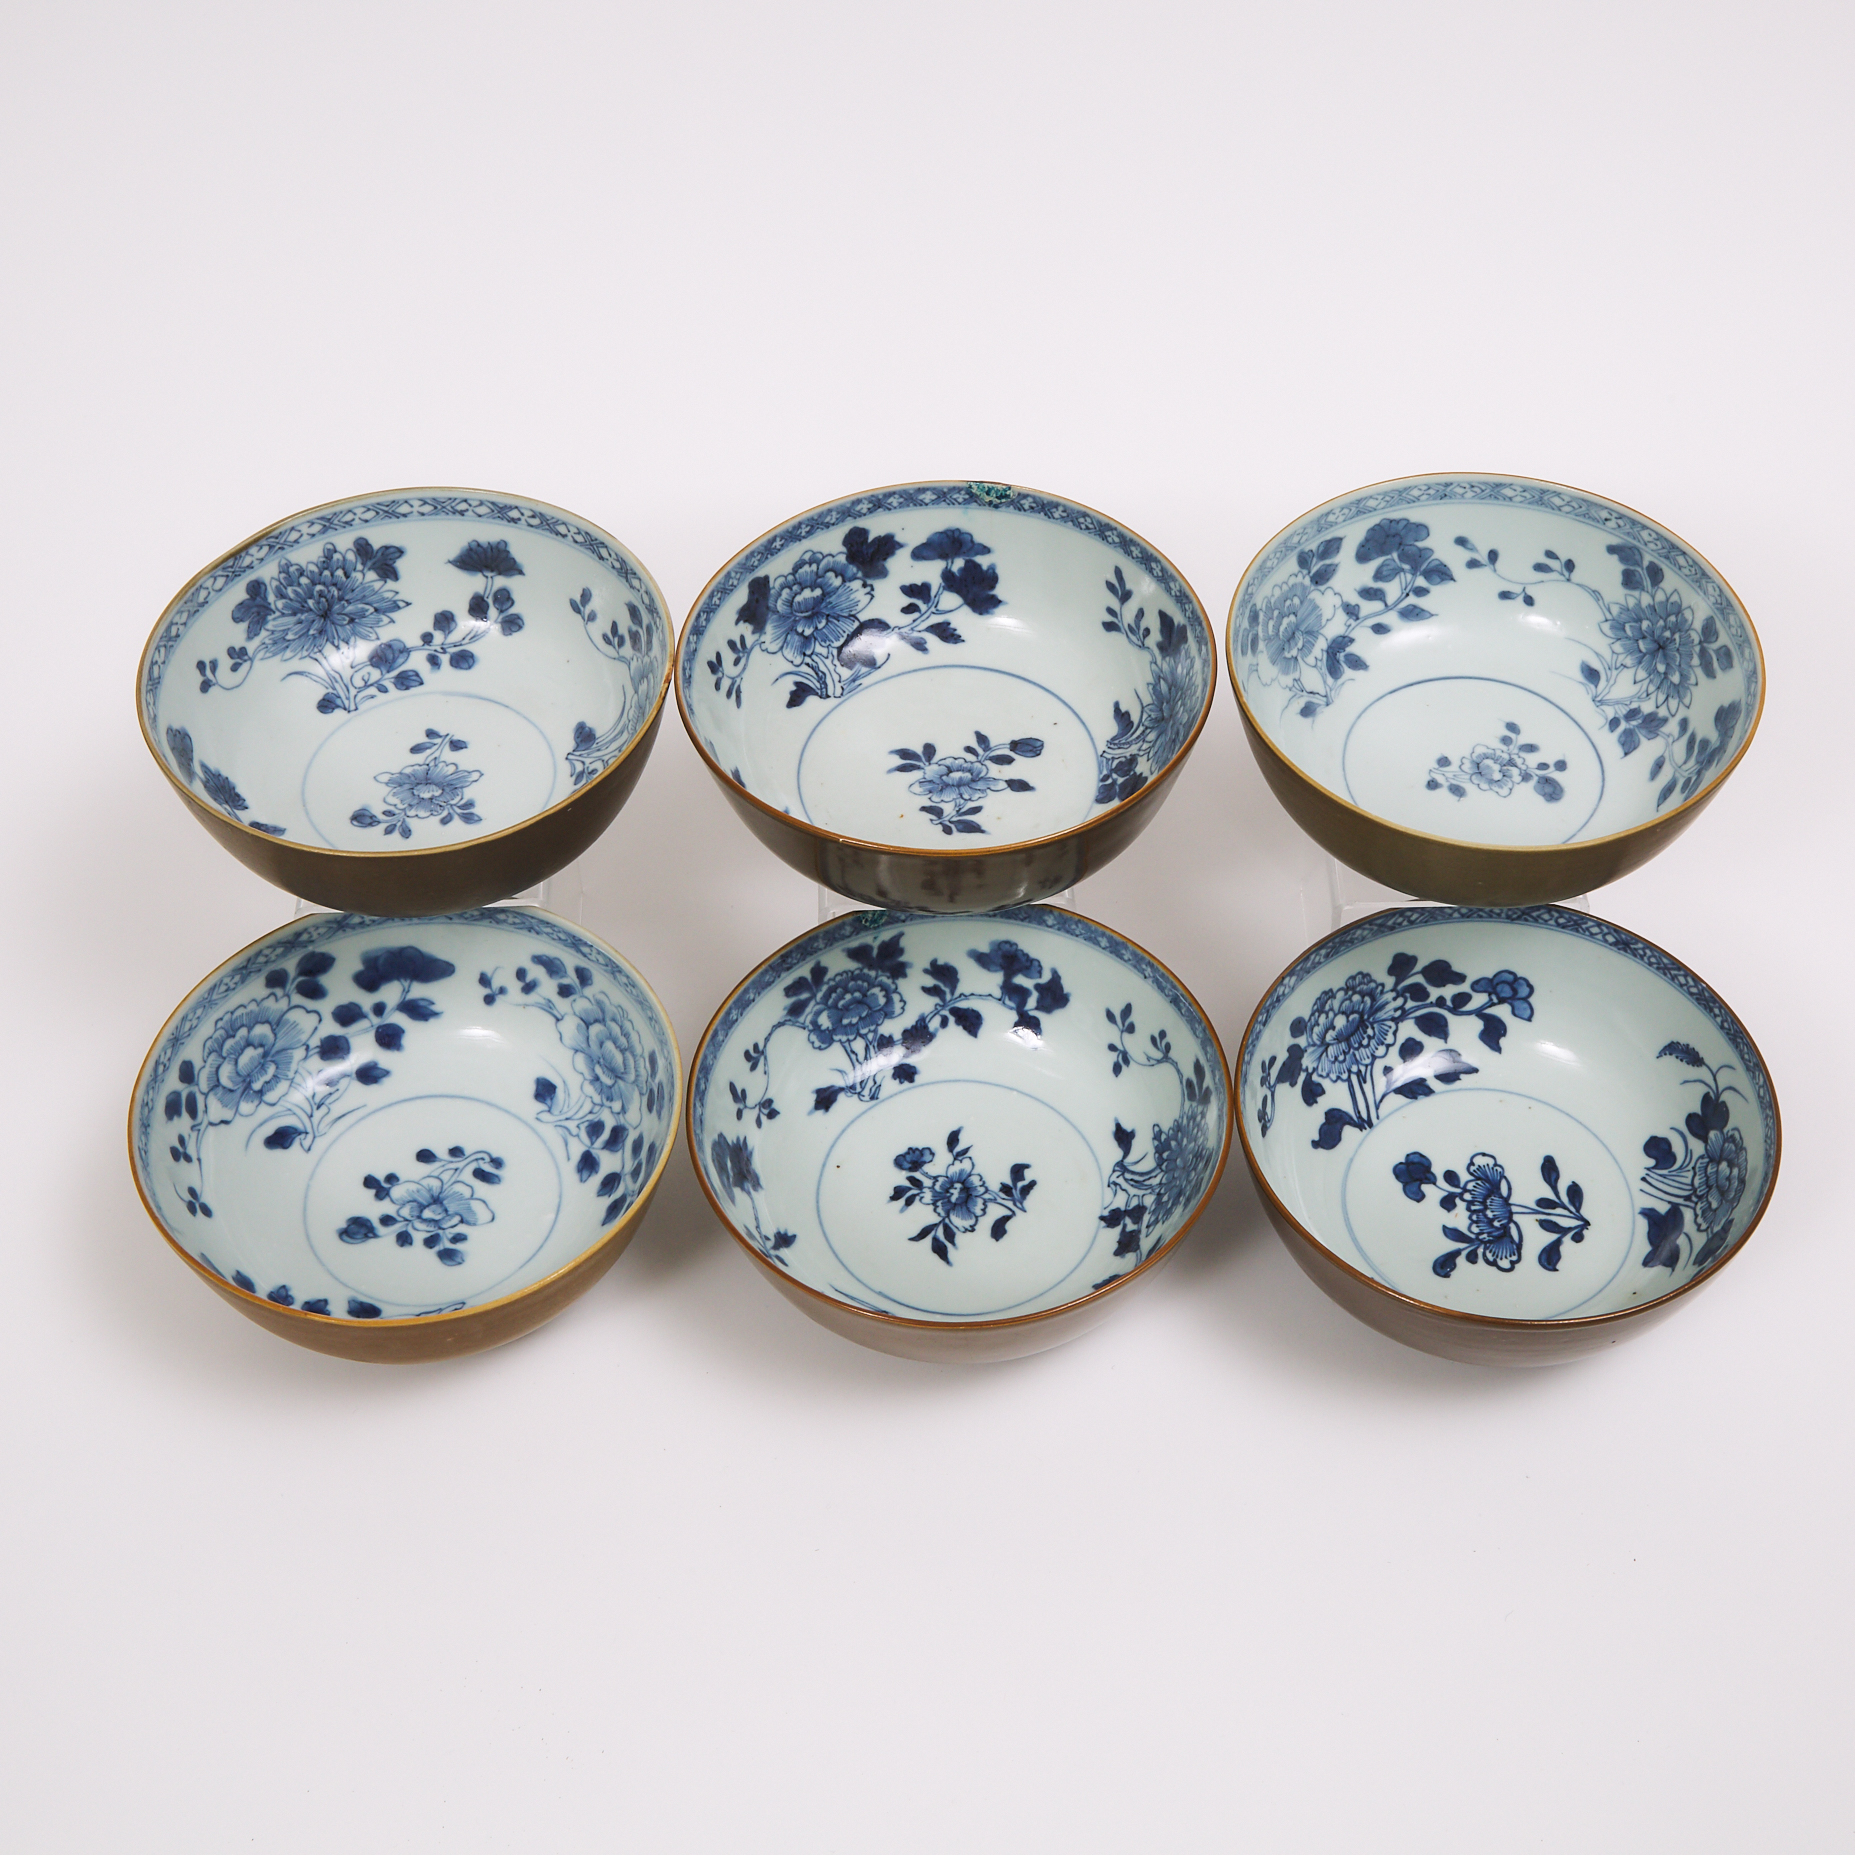 A Set of Six 'Batavian' Floral Bowls from the Nanking Cargo, Qianlong Period, Circa 1750